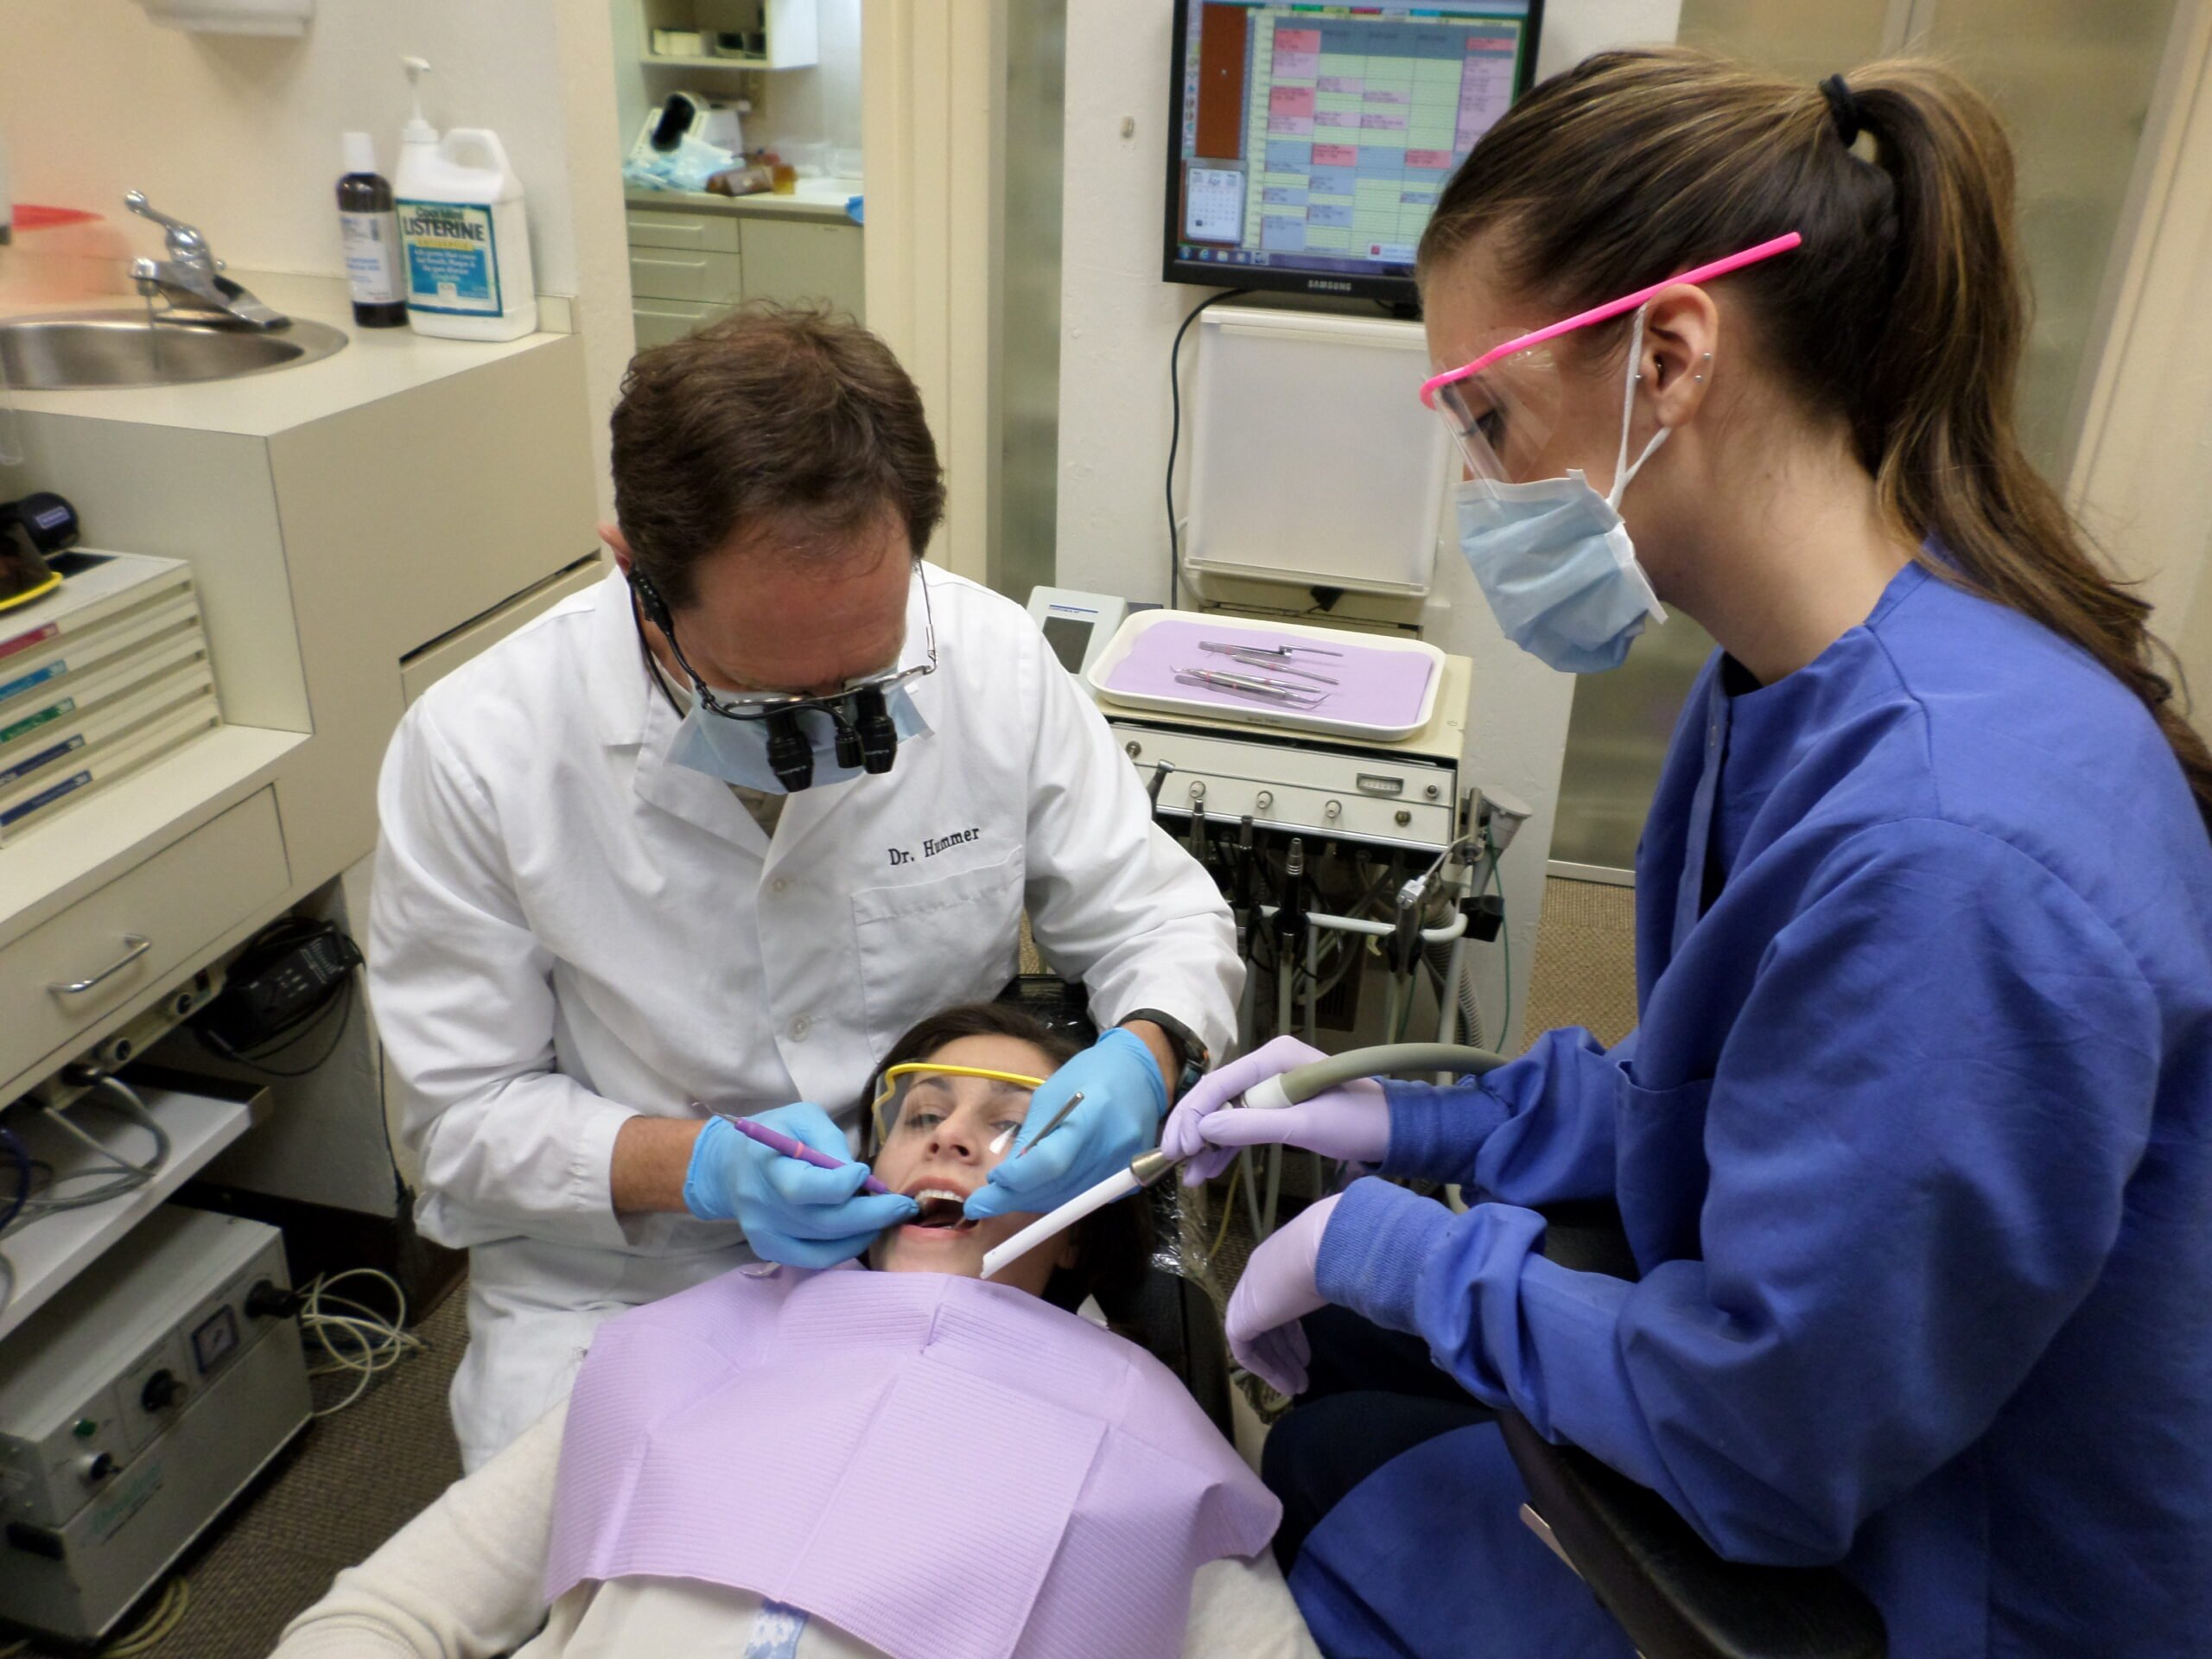 dentist and hygienist caring for a patient